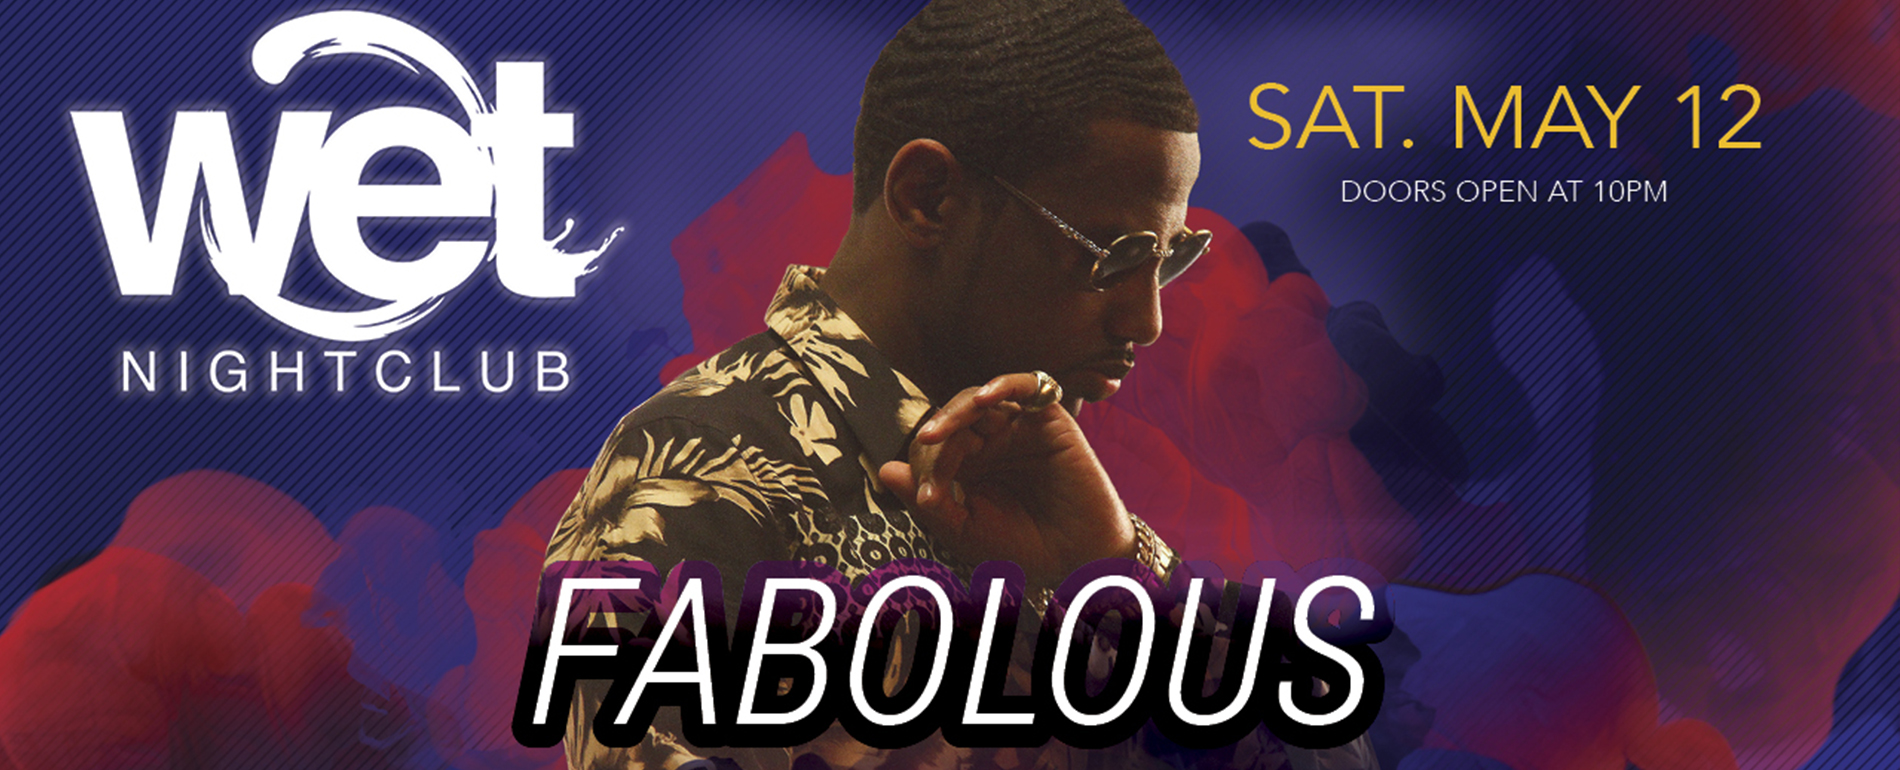 Fabolous Wet Nightclub